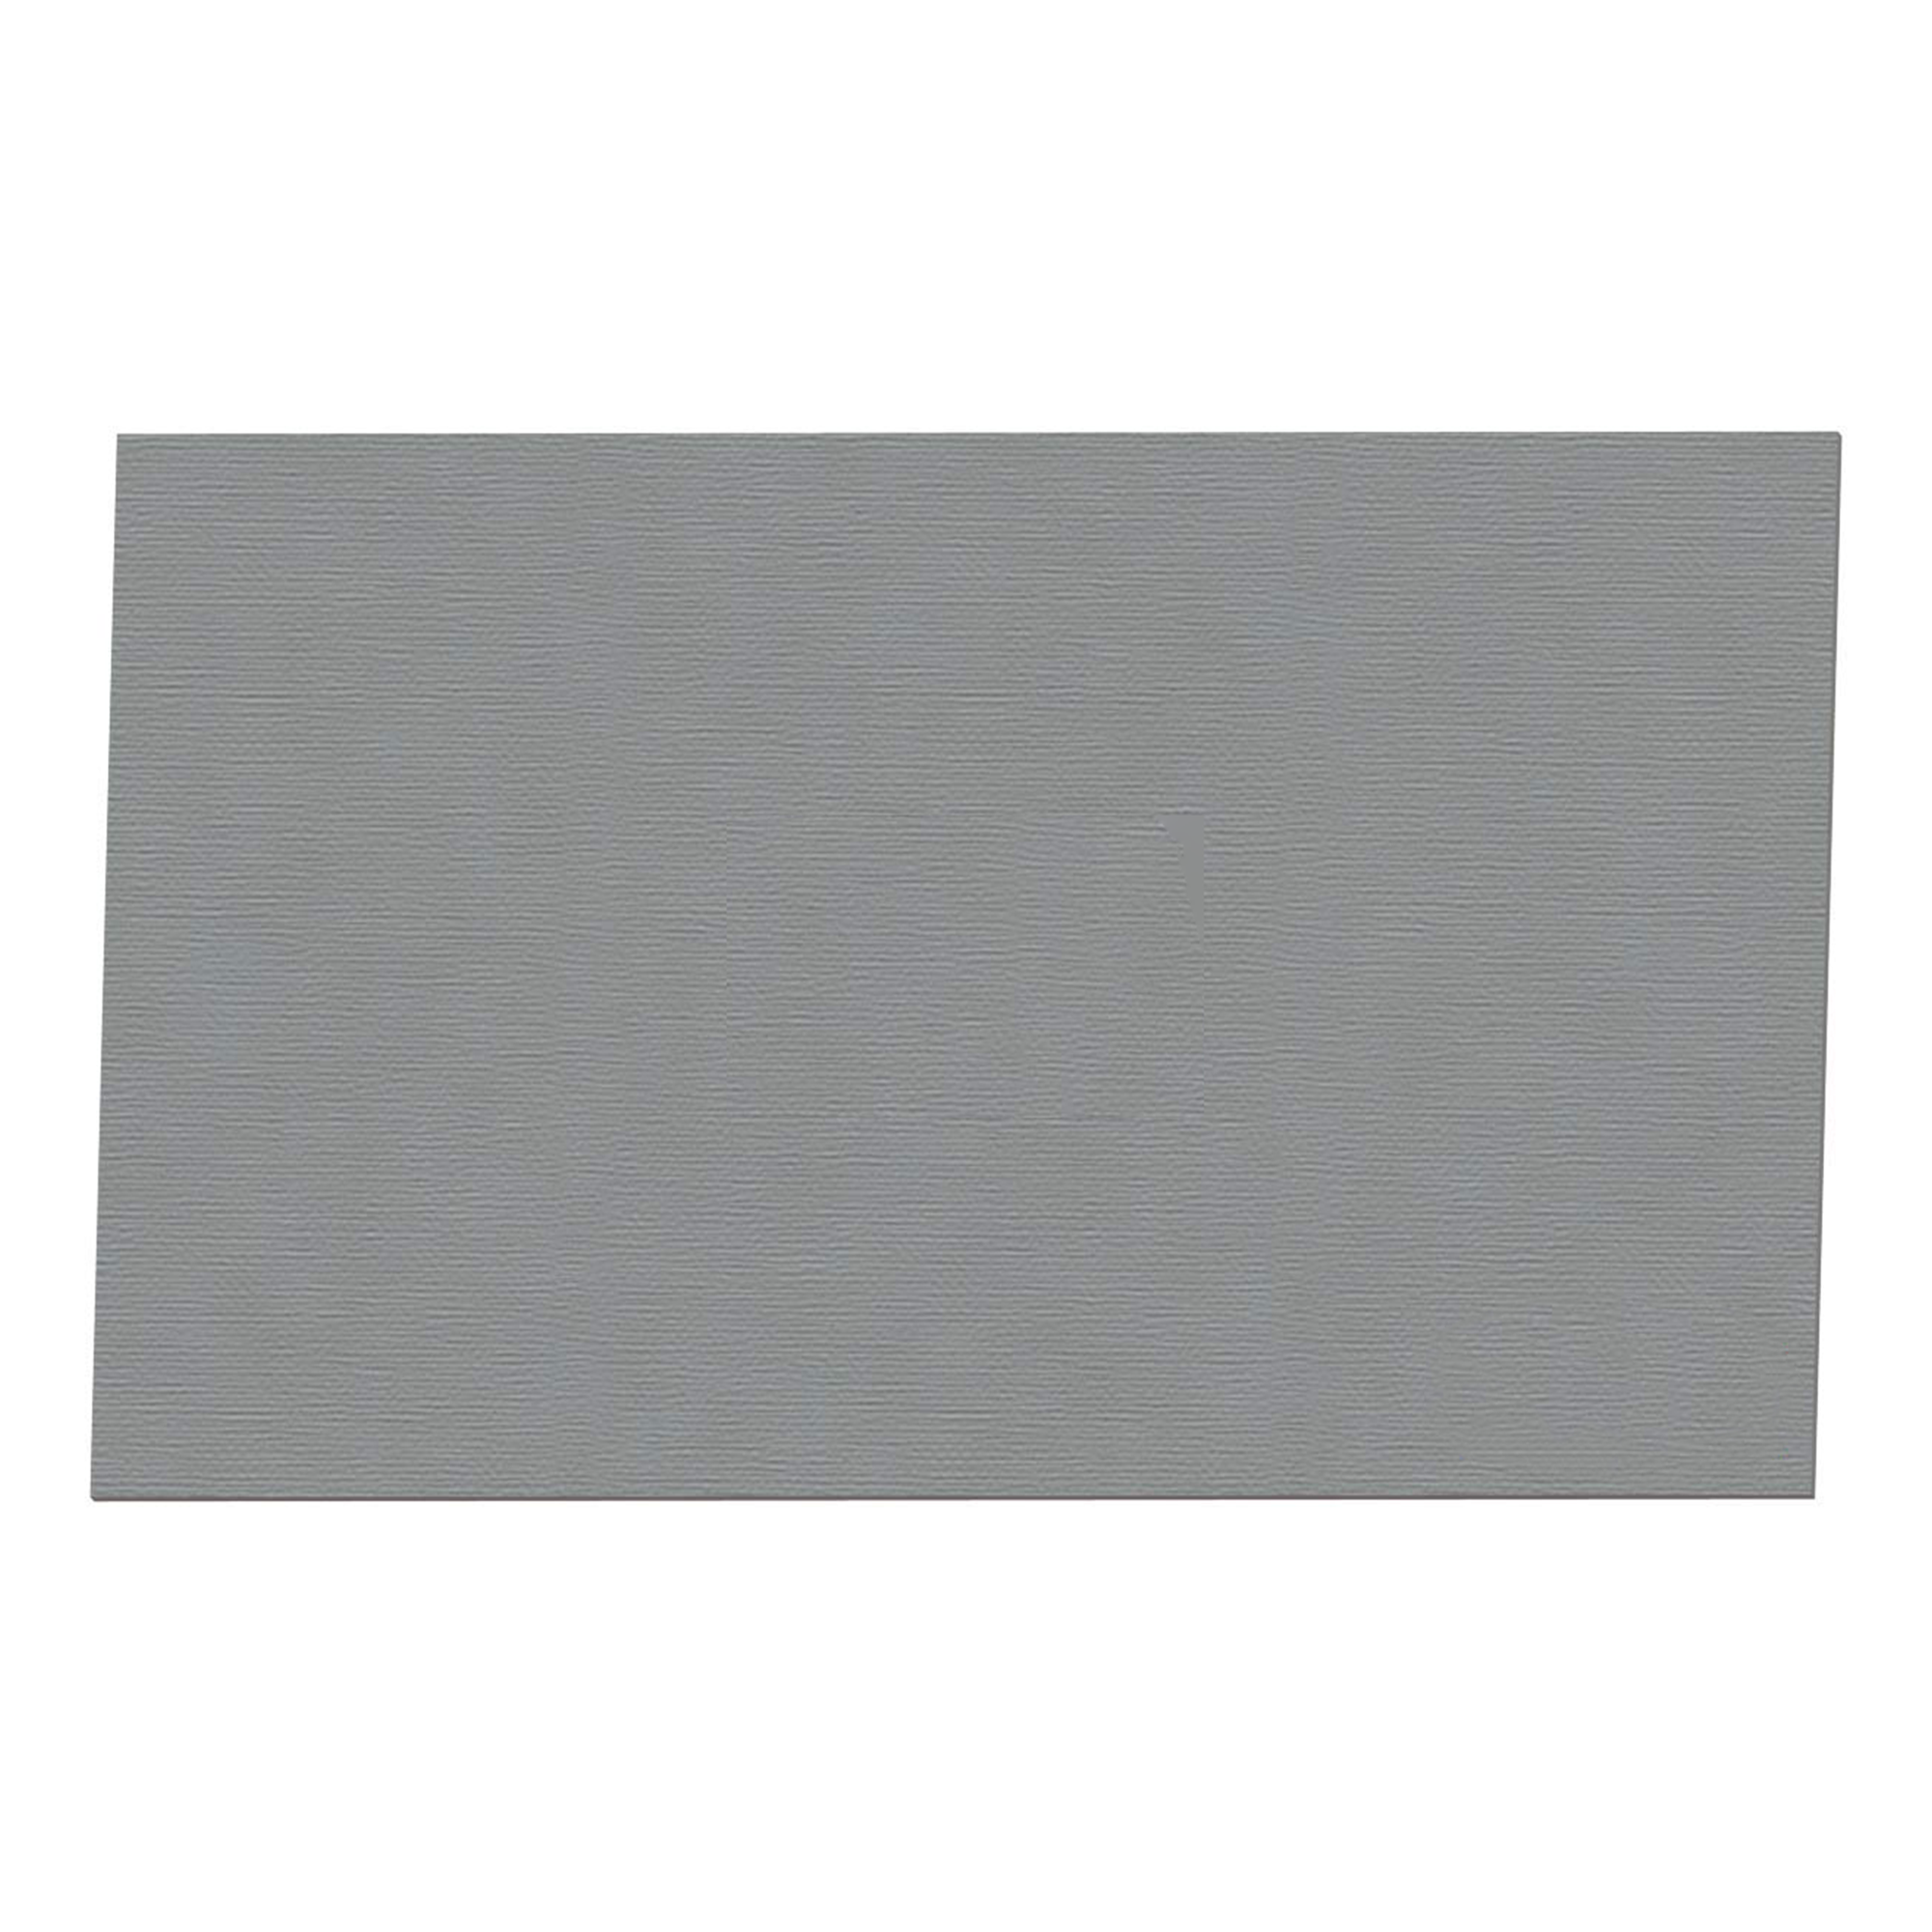 2802A | US Stove Company Ceramic Fiber Board for the Country Hearth EPA 2500, 88138-AMP